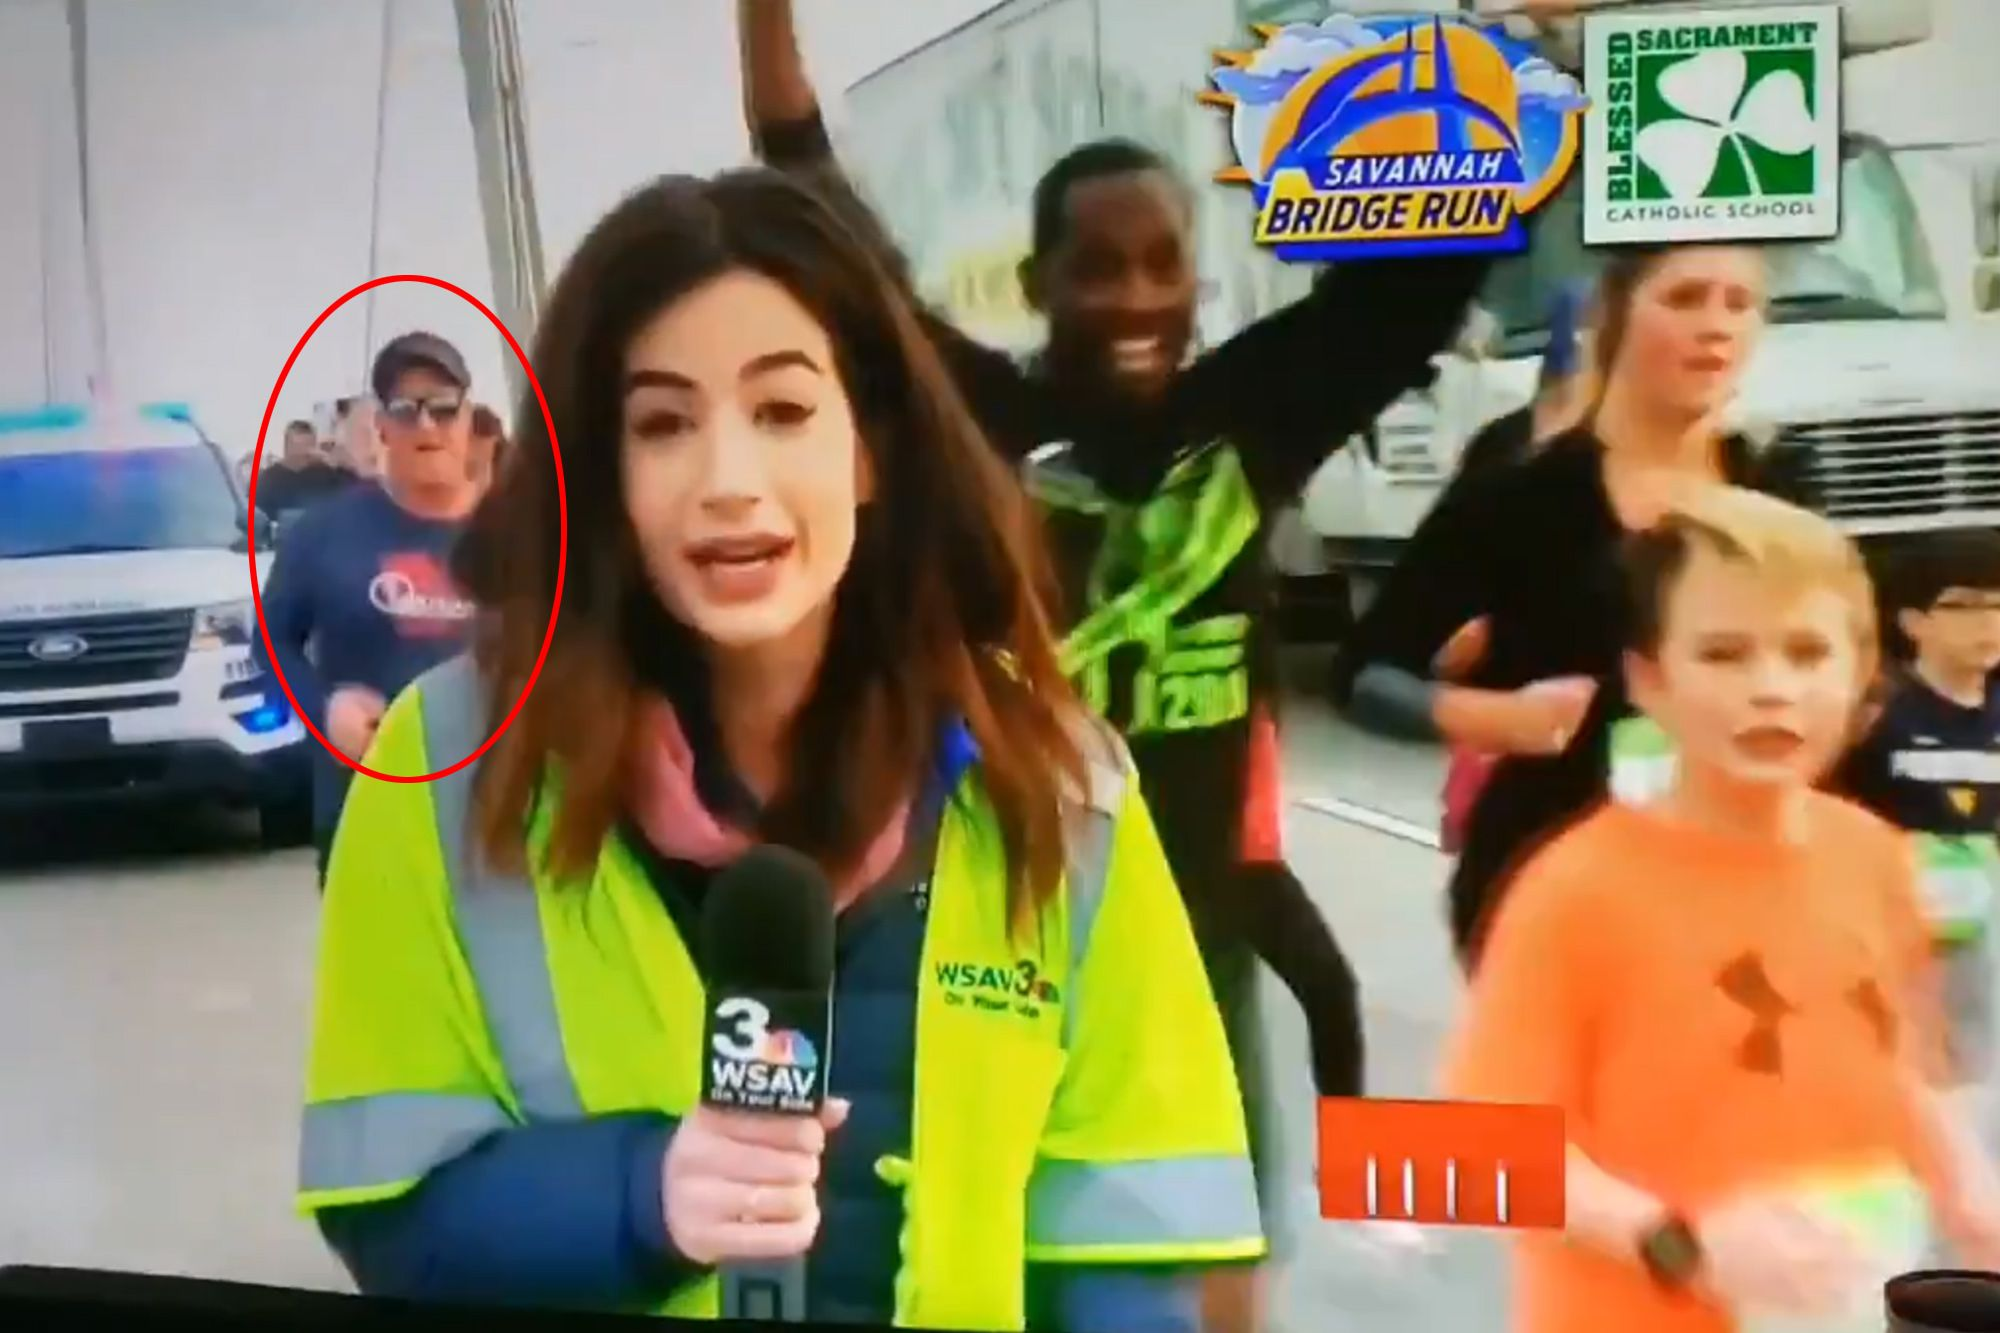 Female TV reporter seeks criminal charges against man who slapped her backside on camera